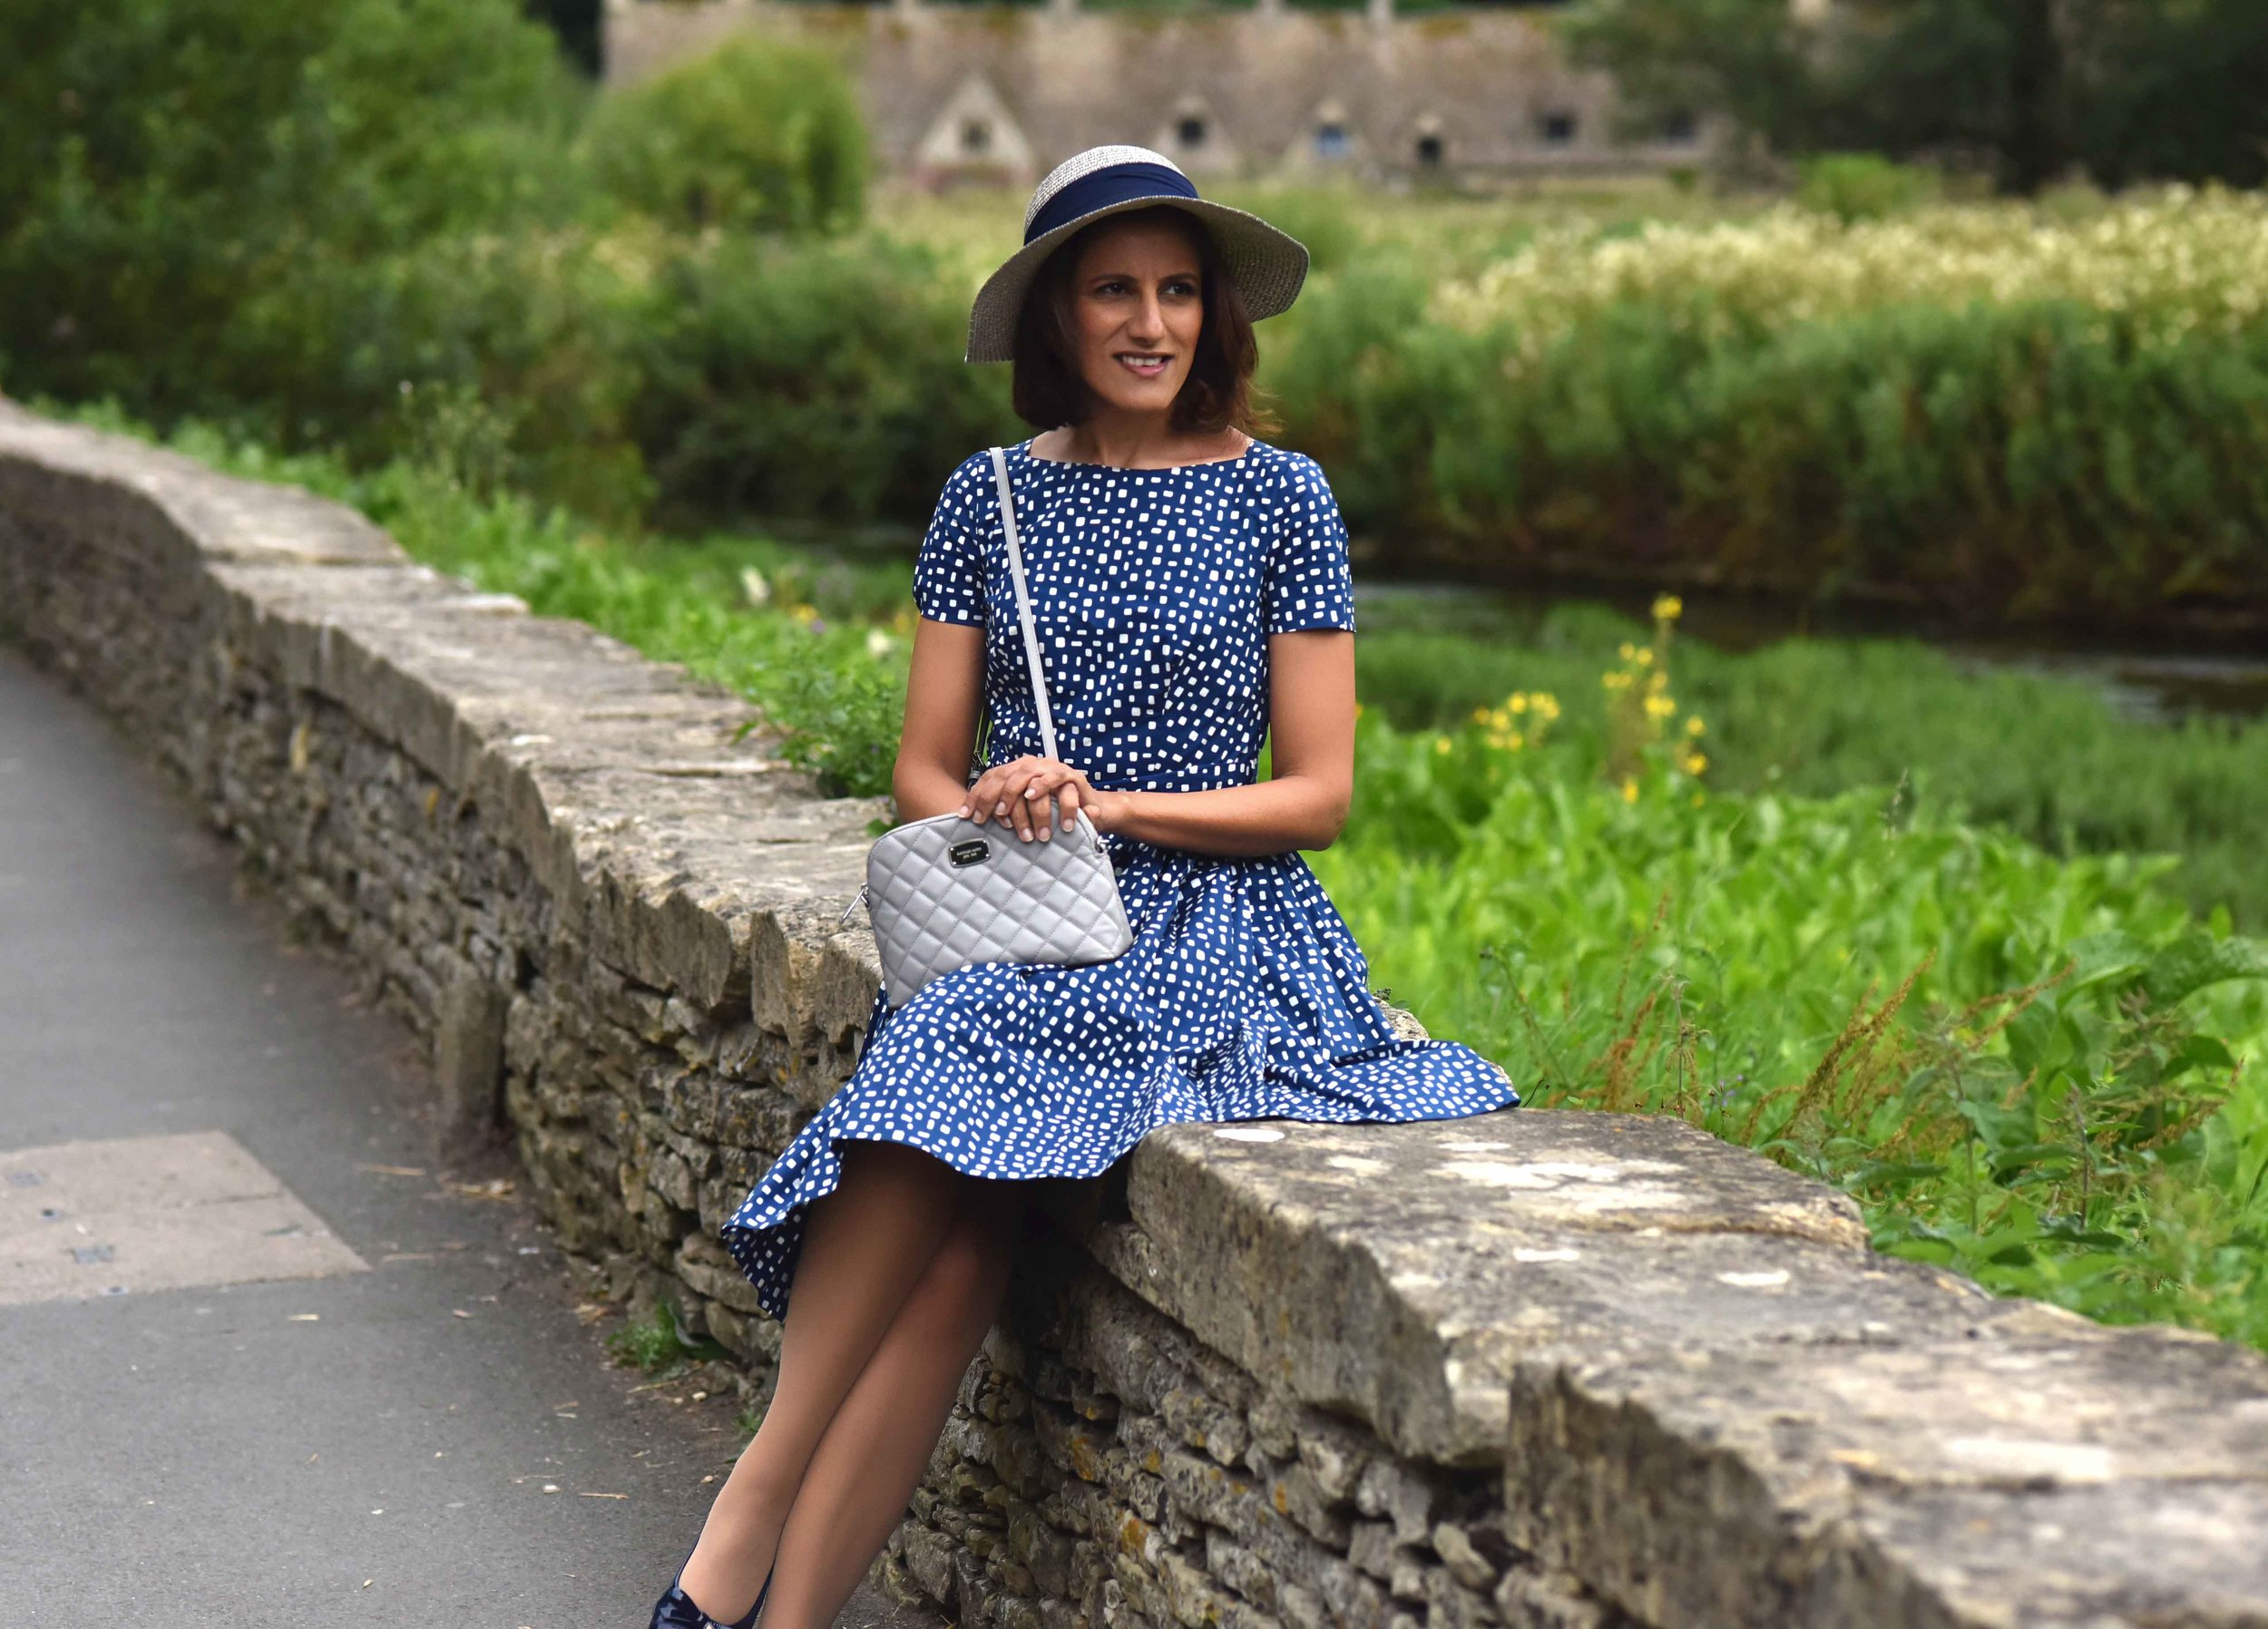 Prada dress, Michael Kors quilted cross body, Bibury, Cotswold, England. Image©thingstodot.com